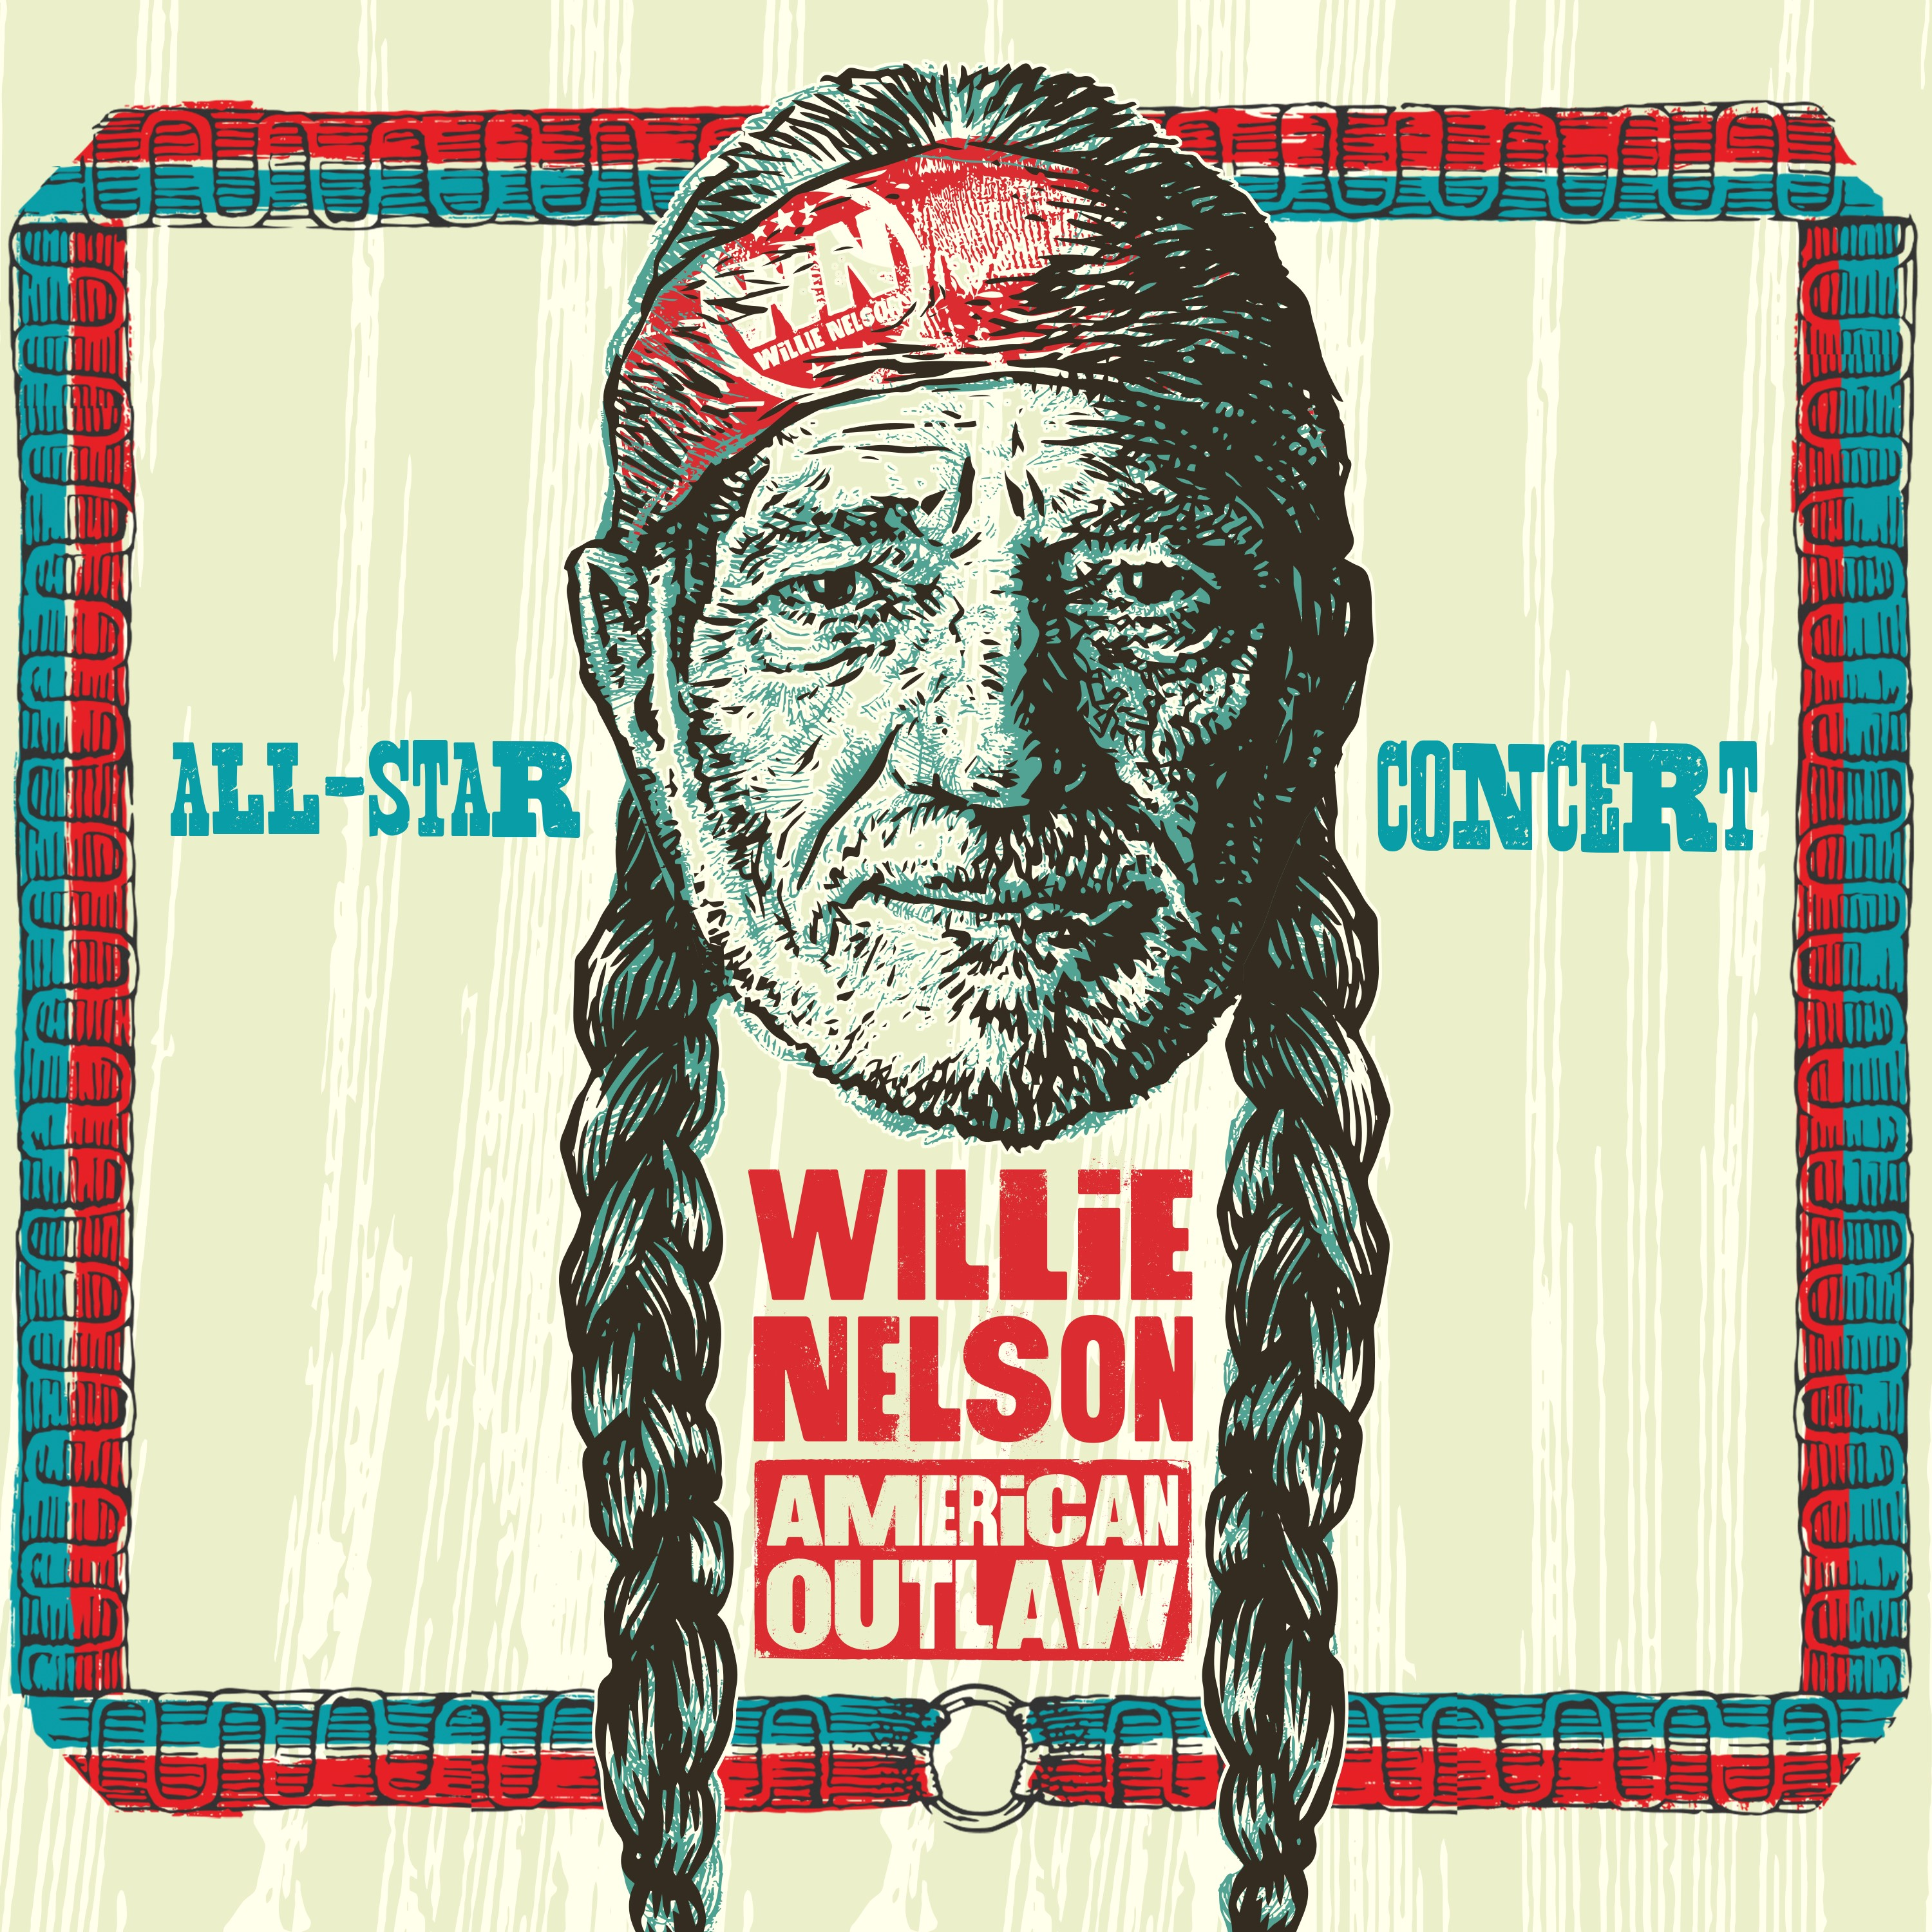 Various Artists - Willie Nelson American Outlaw (Live At Bridgestone Arena / 2019)  [RSD Drops 2021]